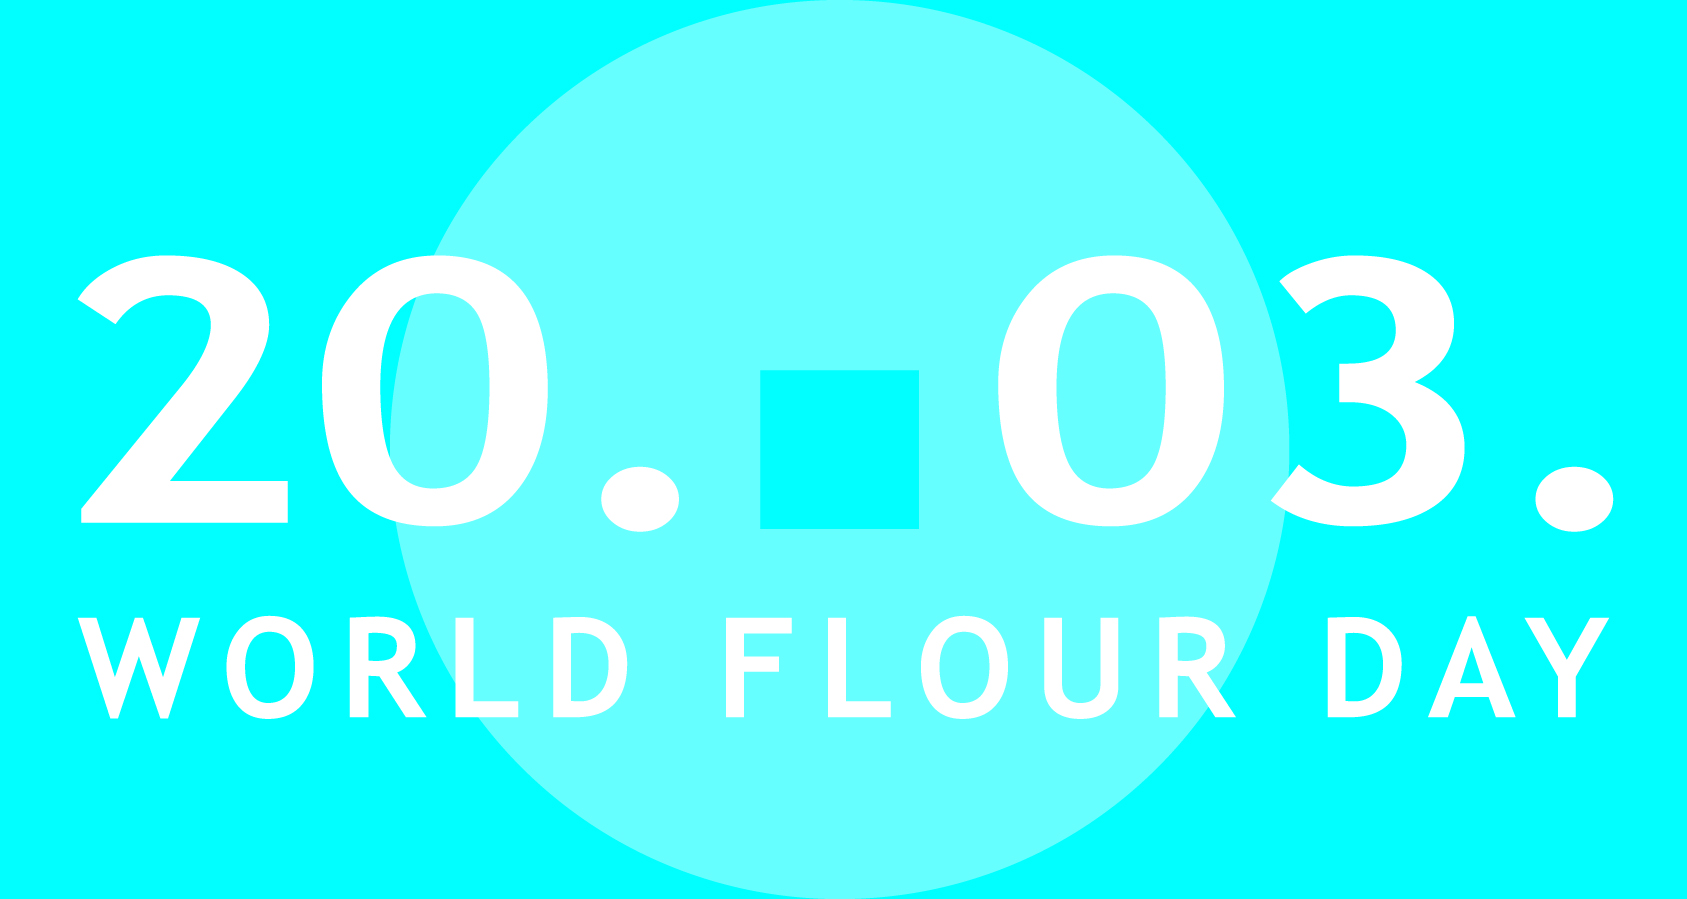 World Flour Day - March 20